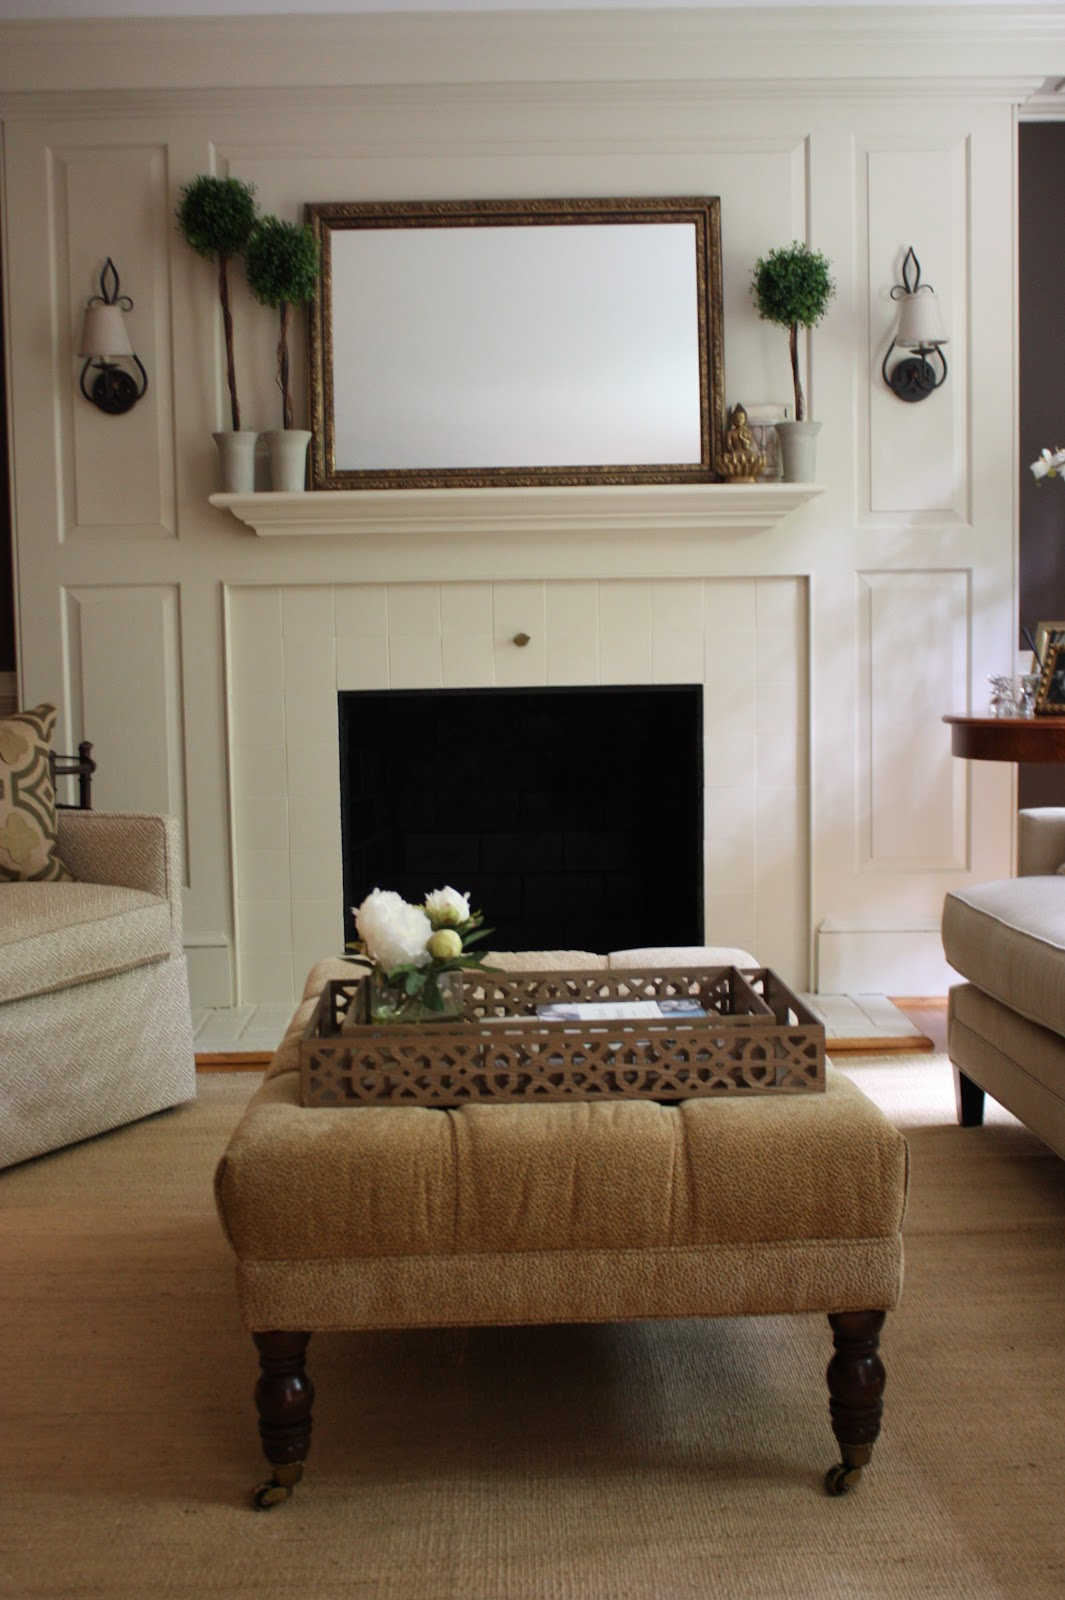 The nest egg the cobbler 39 s living room before after for Room decor next